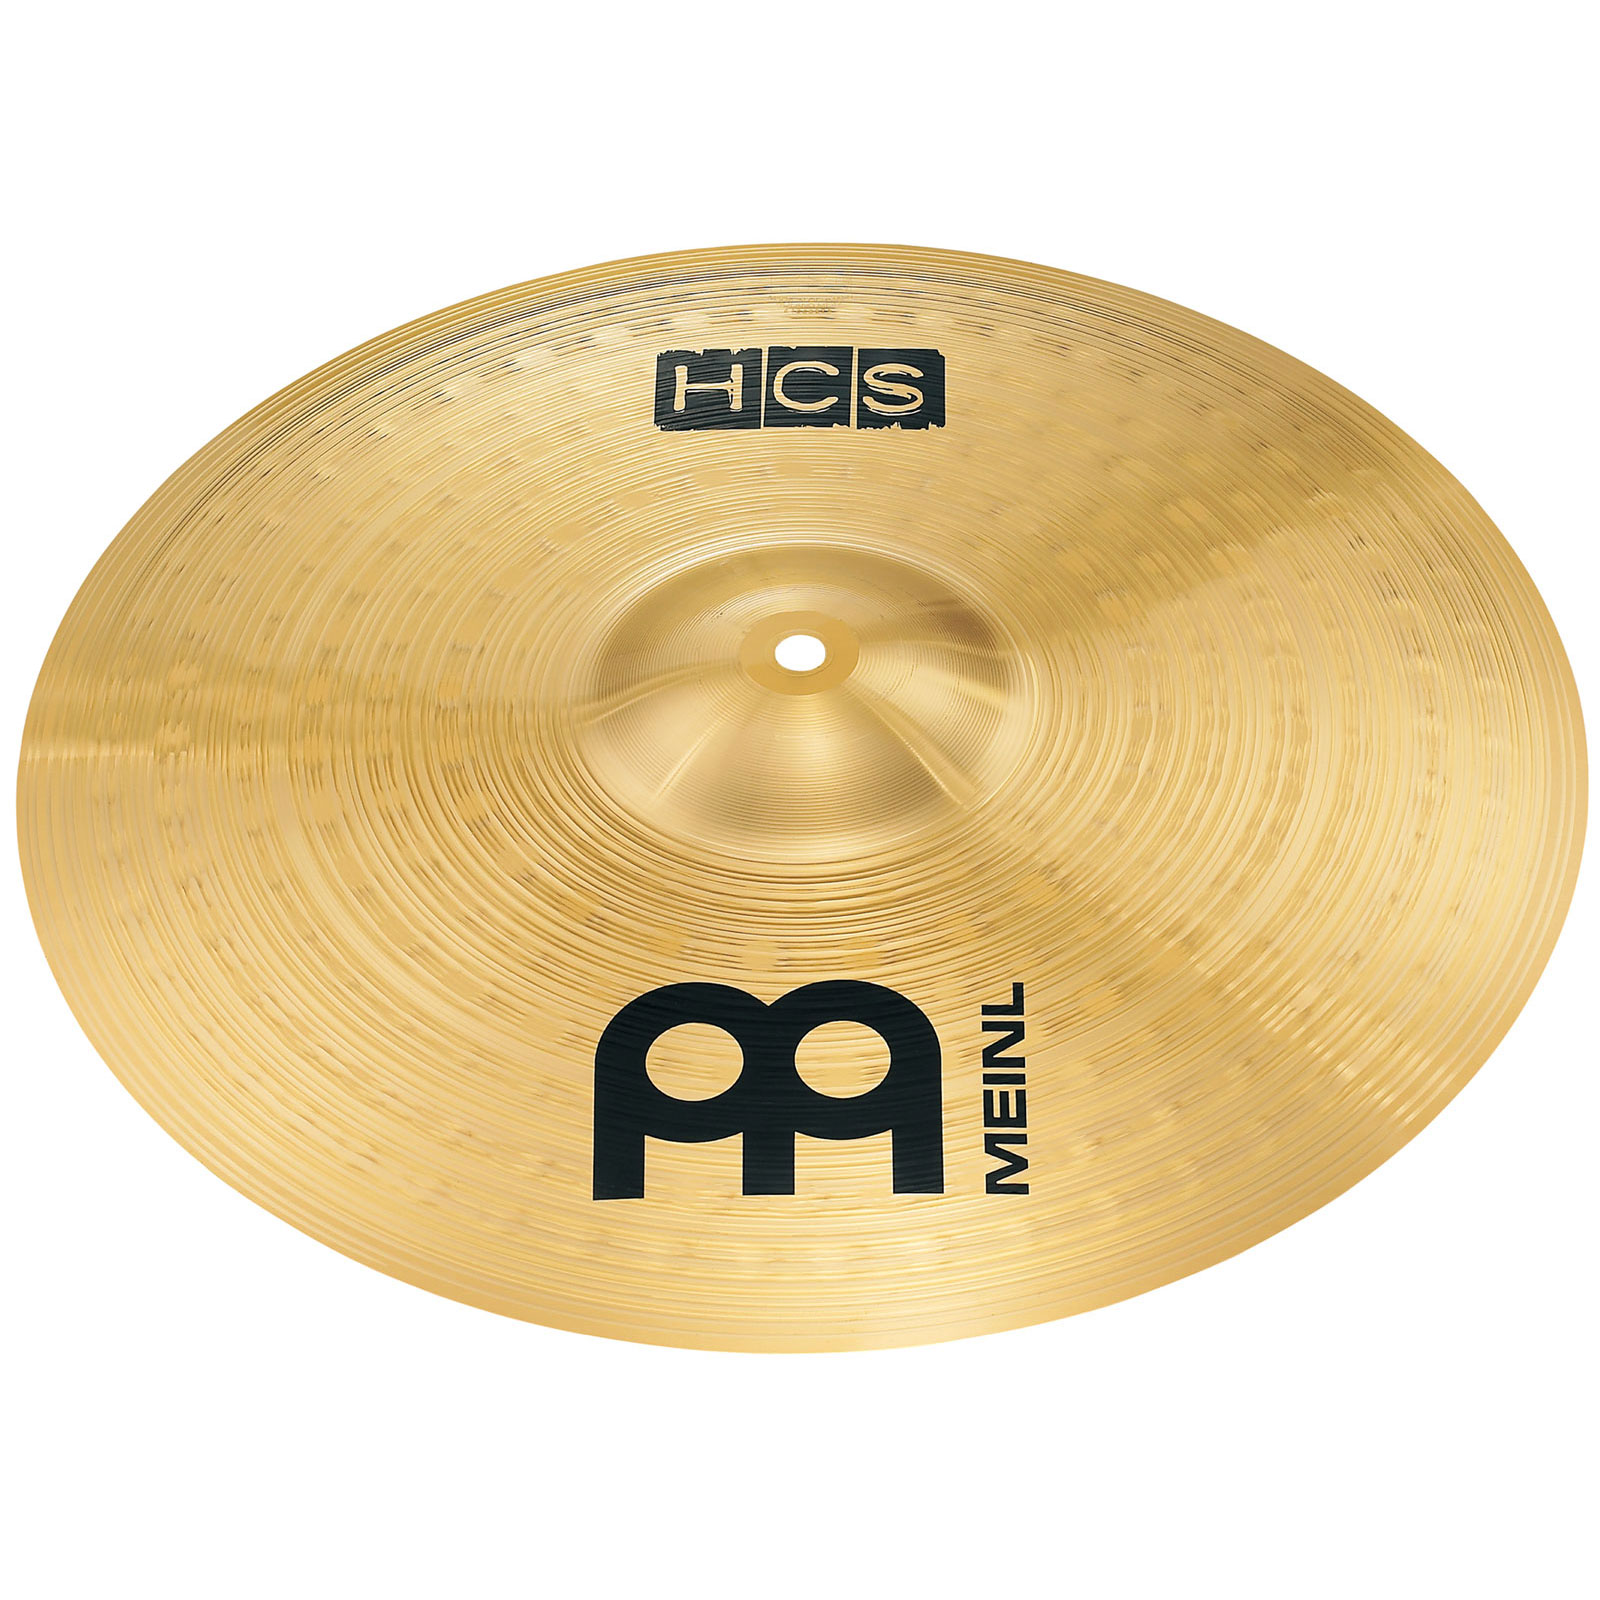 "Meinl 18"" HCS China Cymbal"